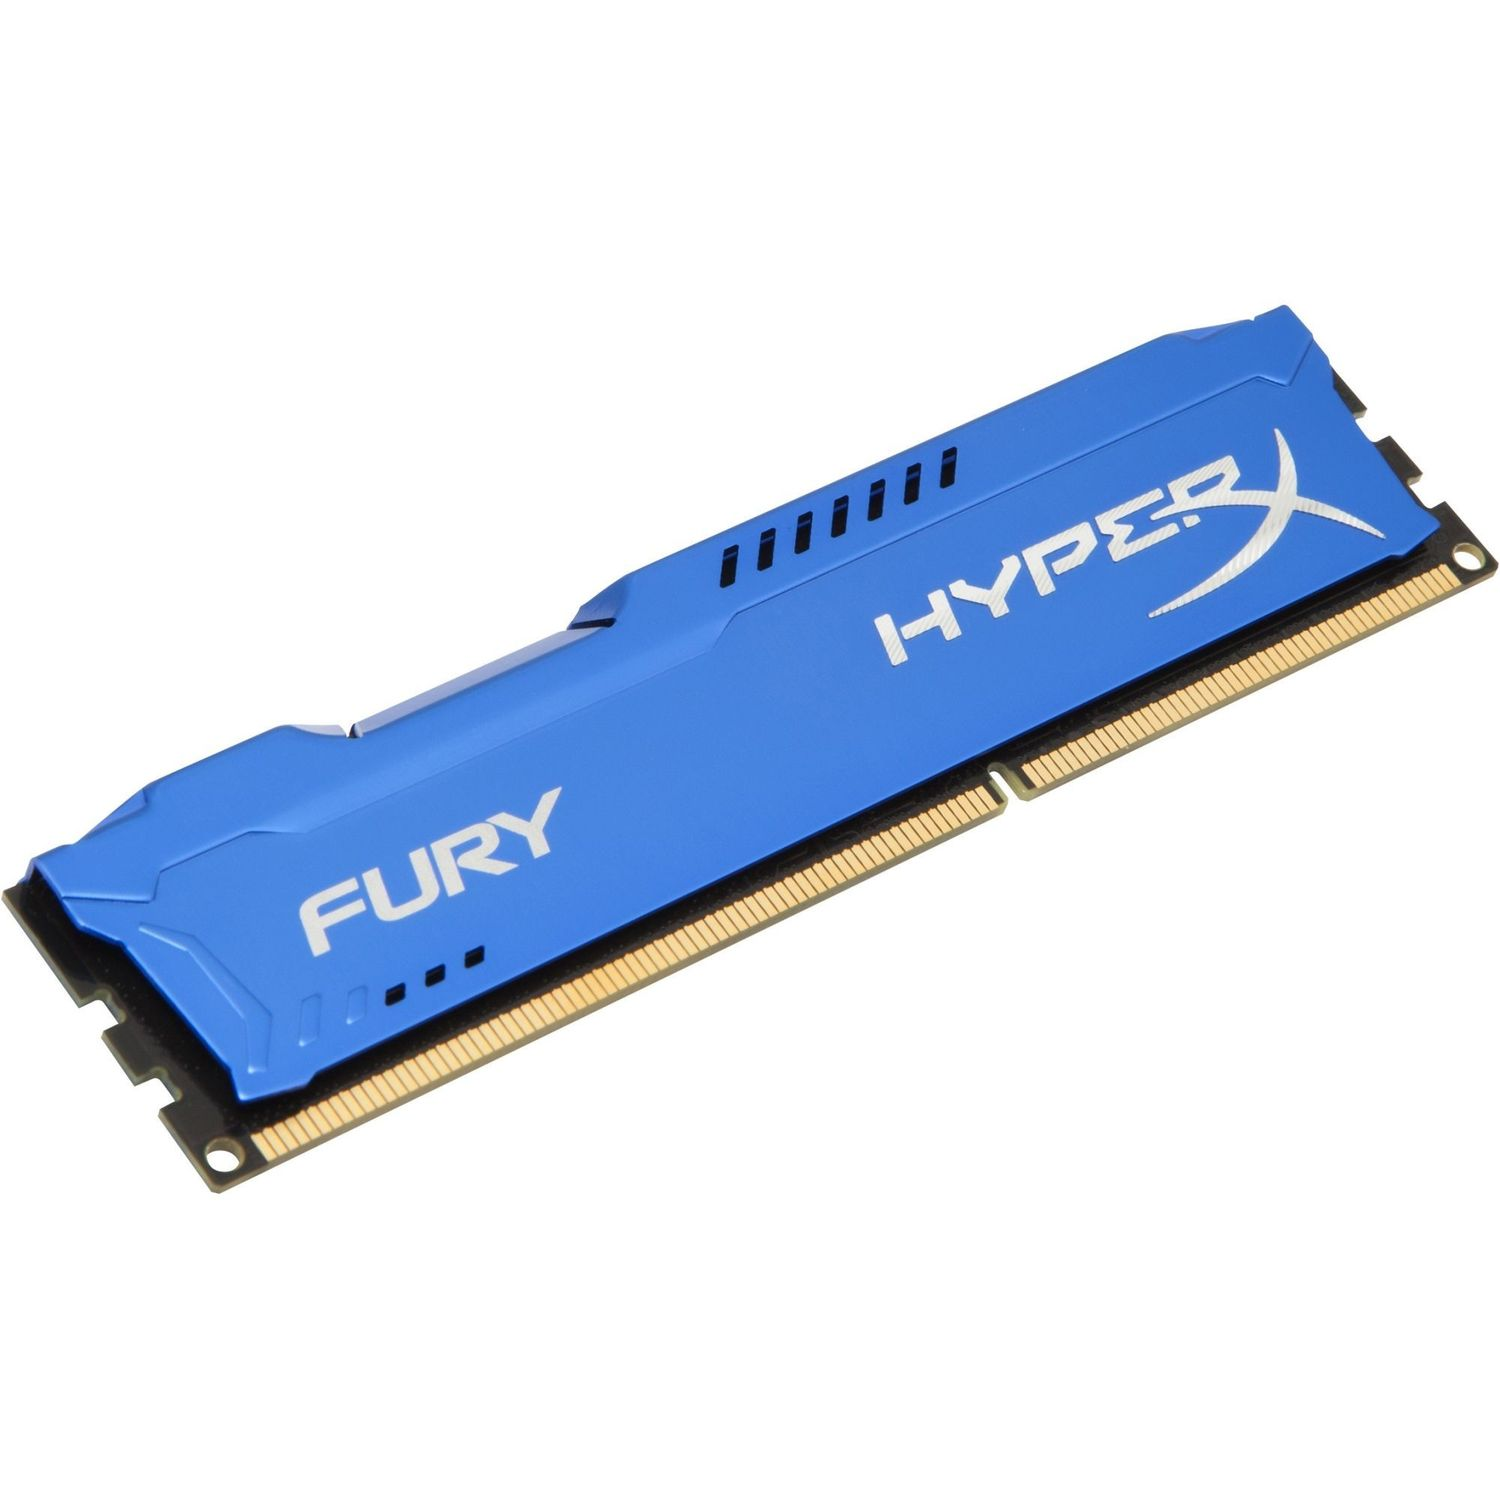 все цены на Память DDR3 Kingston 4GB 1333MHzПамять DDR3 CL9 DIMM HyperX FURY Blue Series (HX313C9F/4) онлайн